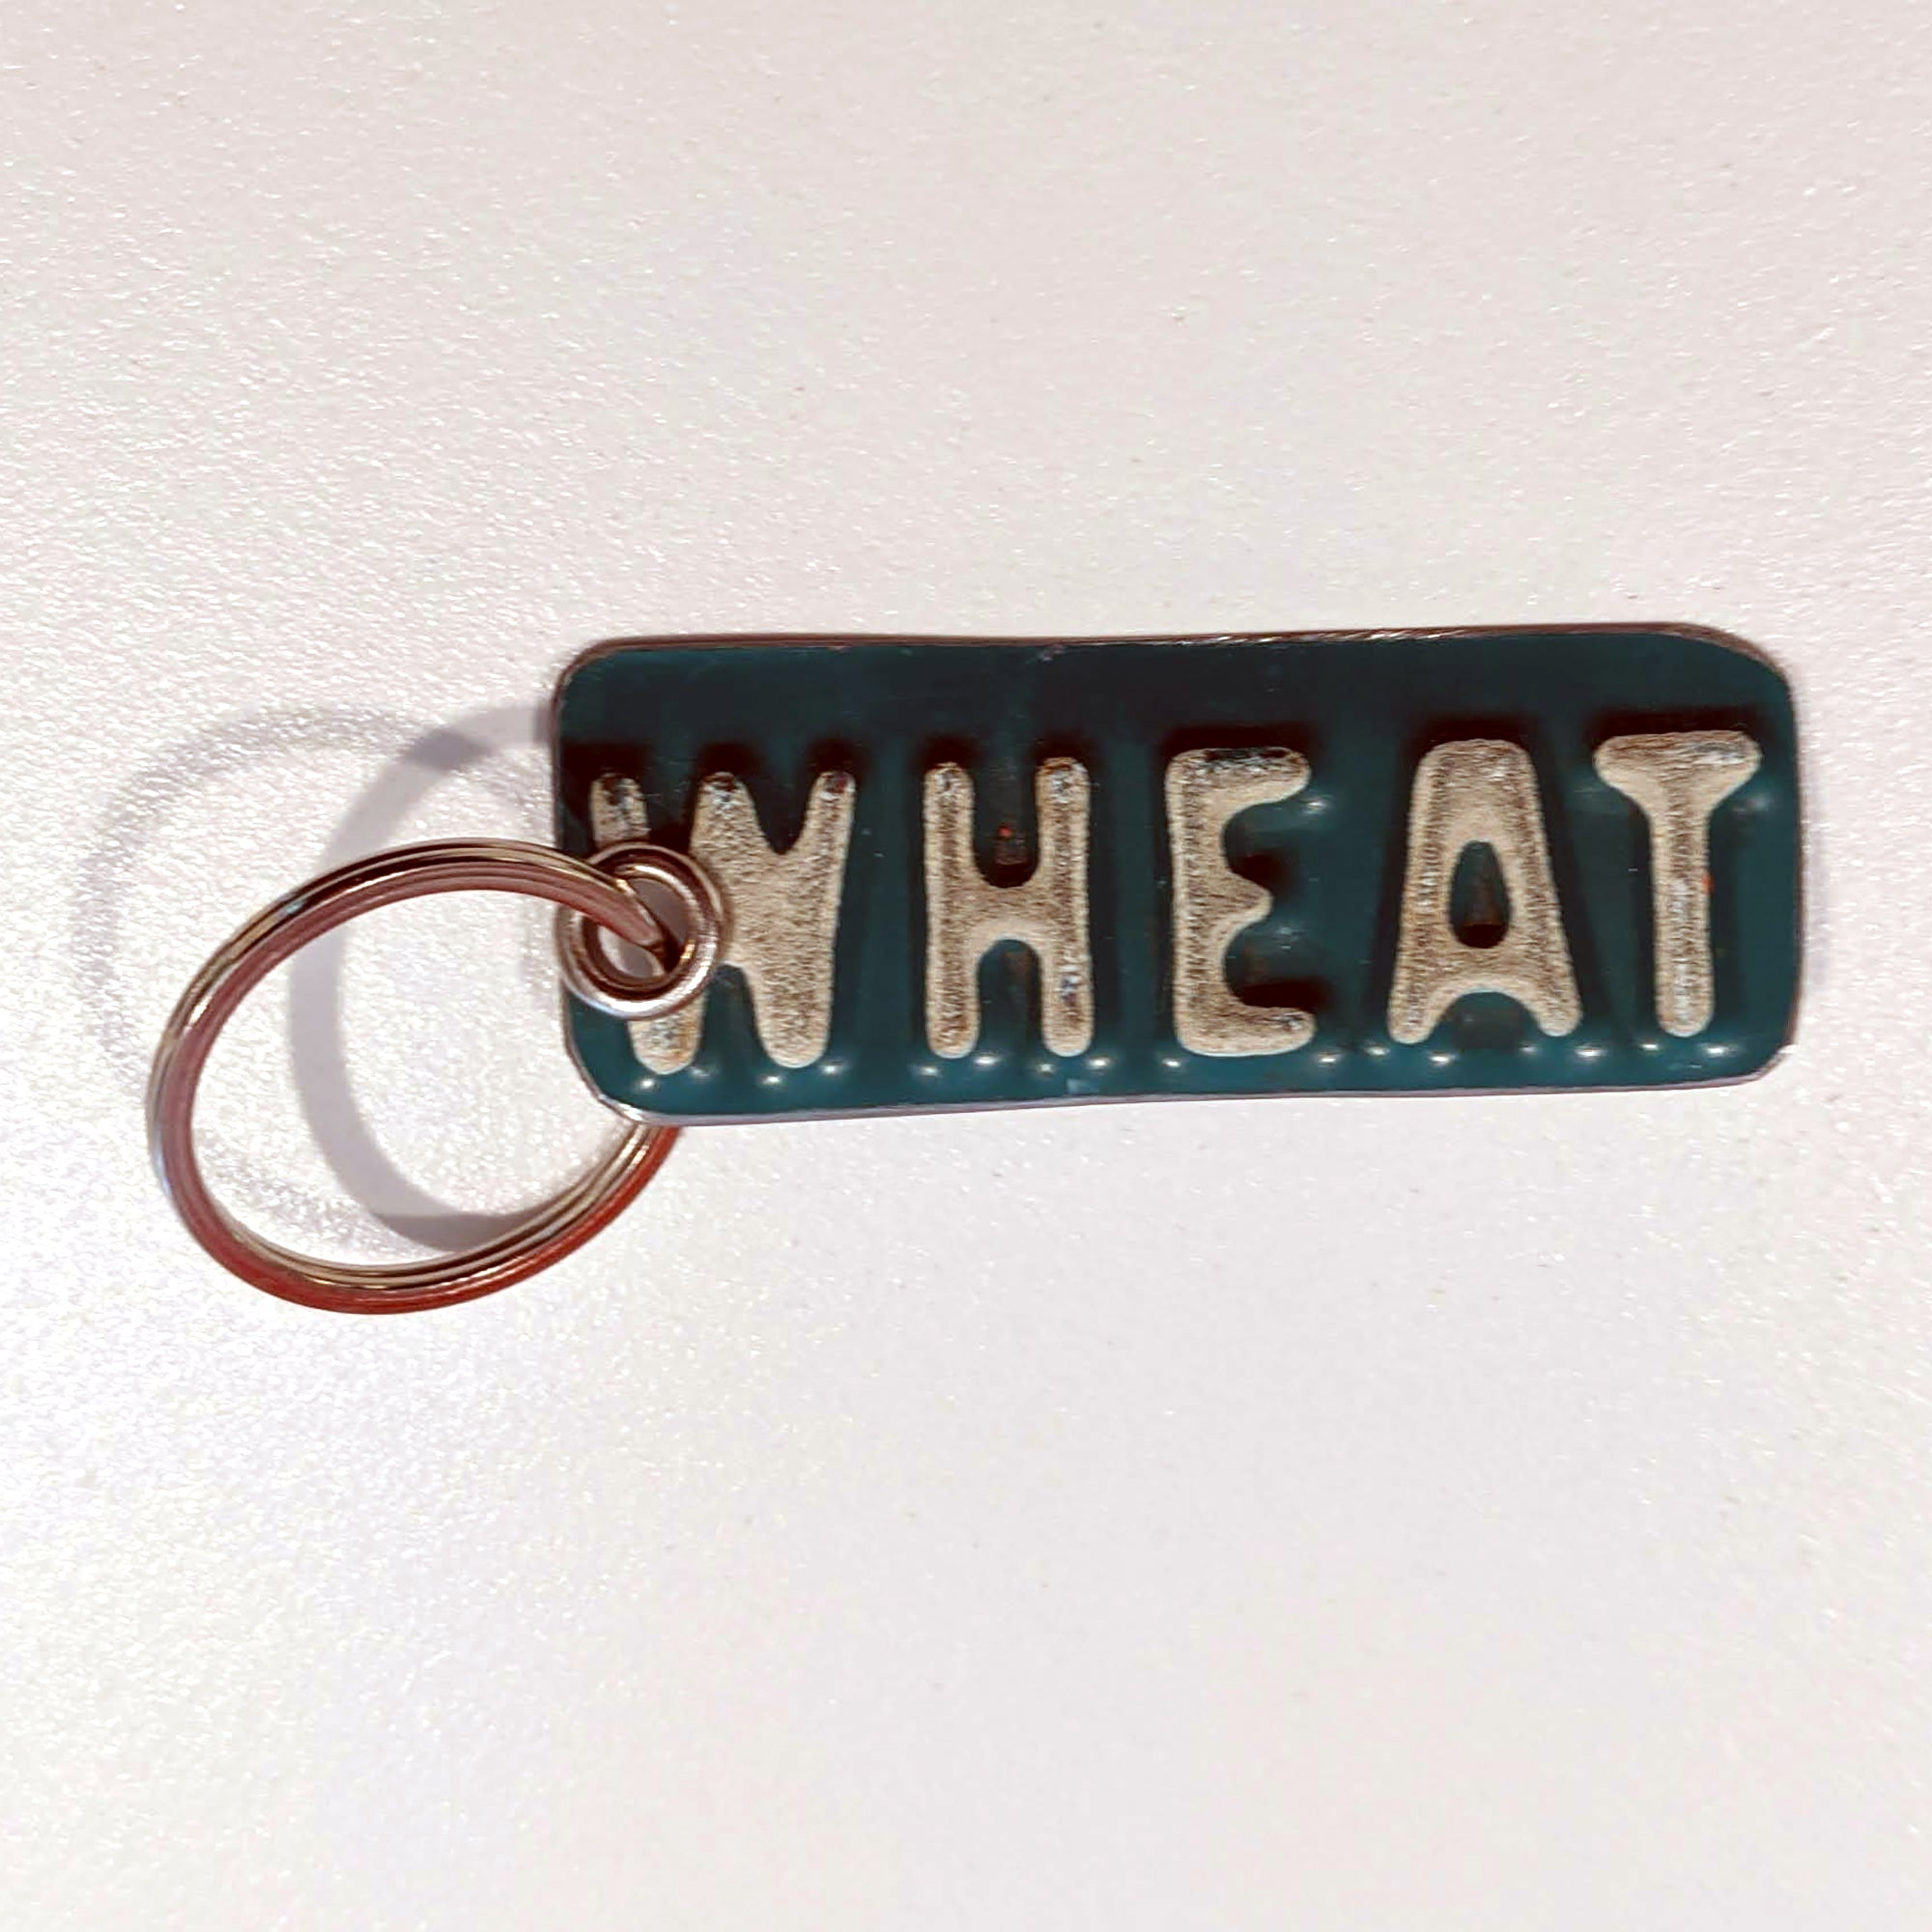 Artistic License Keyring: WHEAT